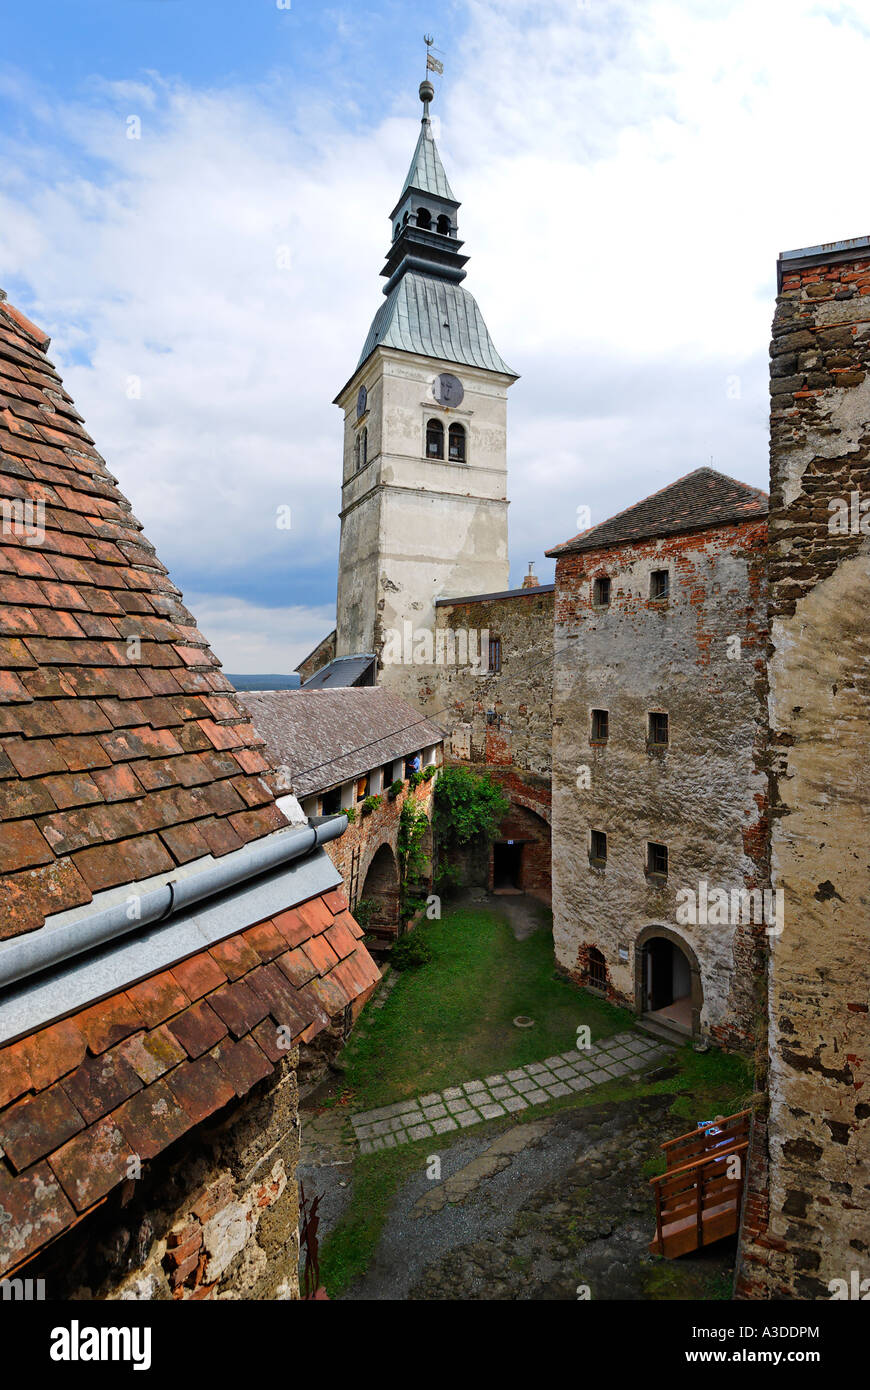 Guessing castle Burgenland Austria inner court with donjon - Stock Image